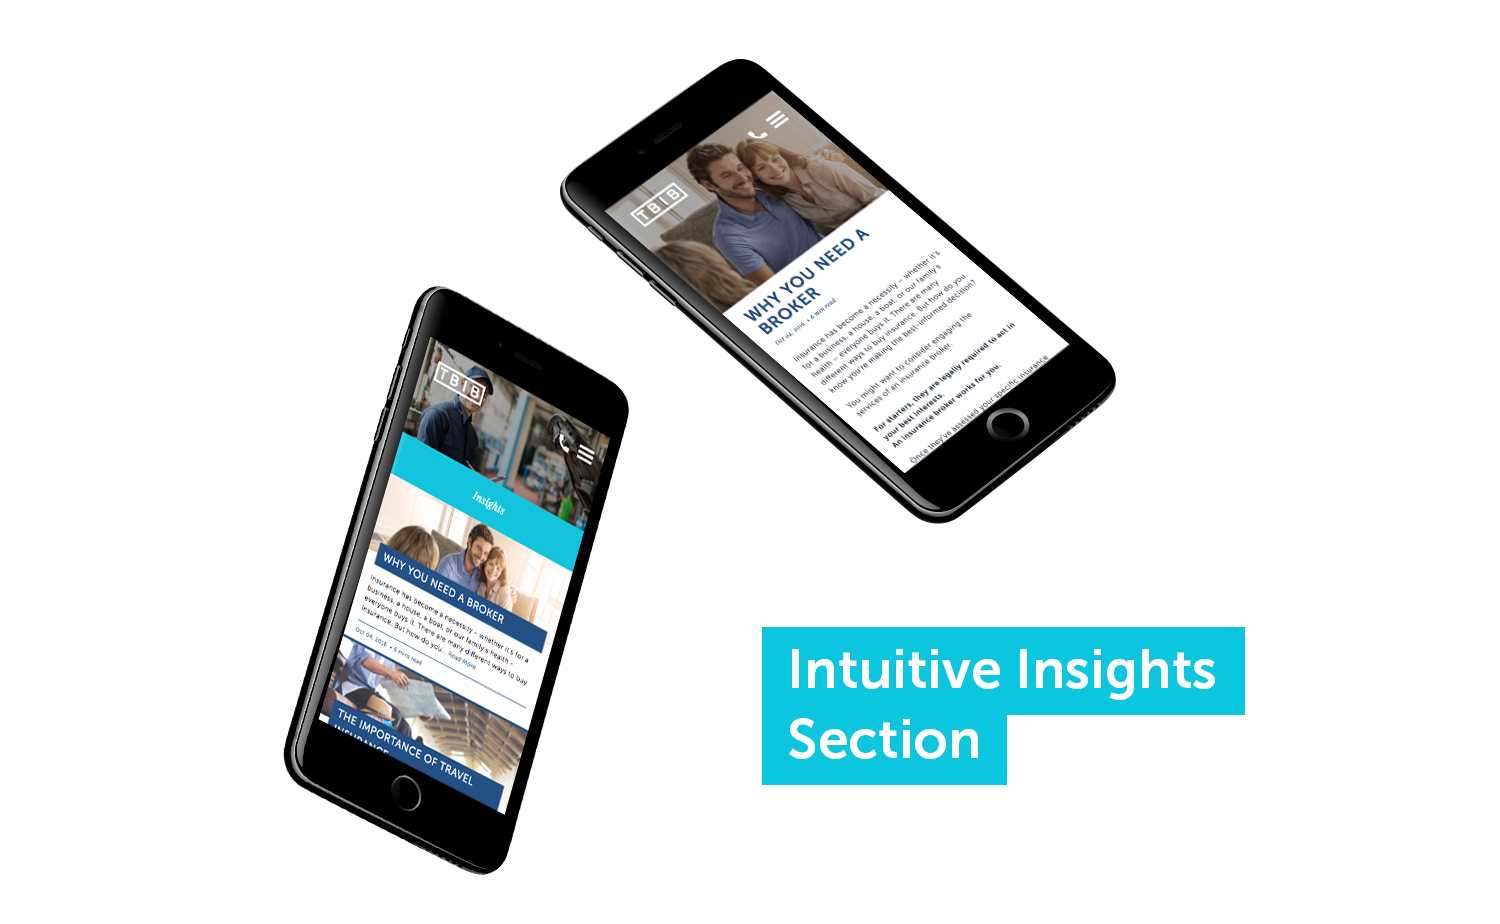 Intuitive Insights Section